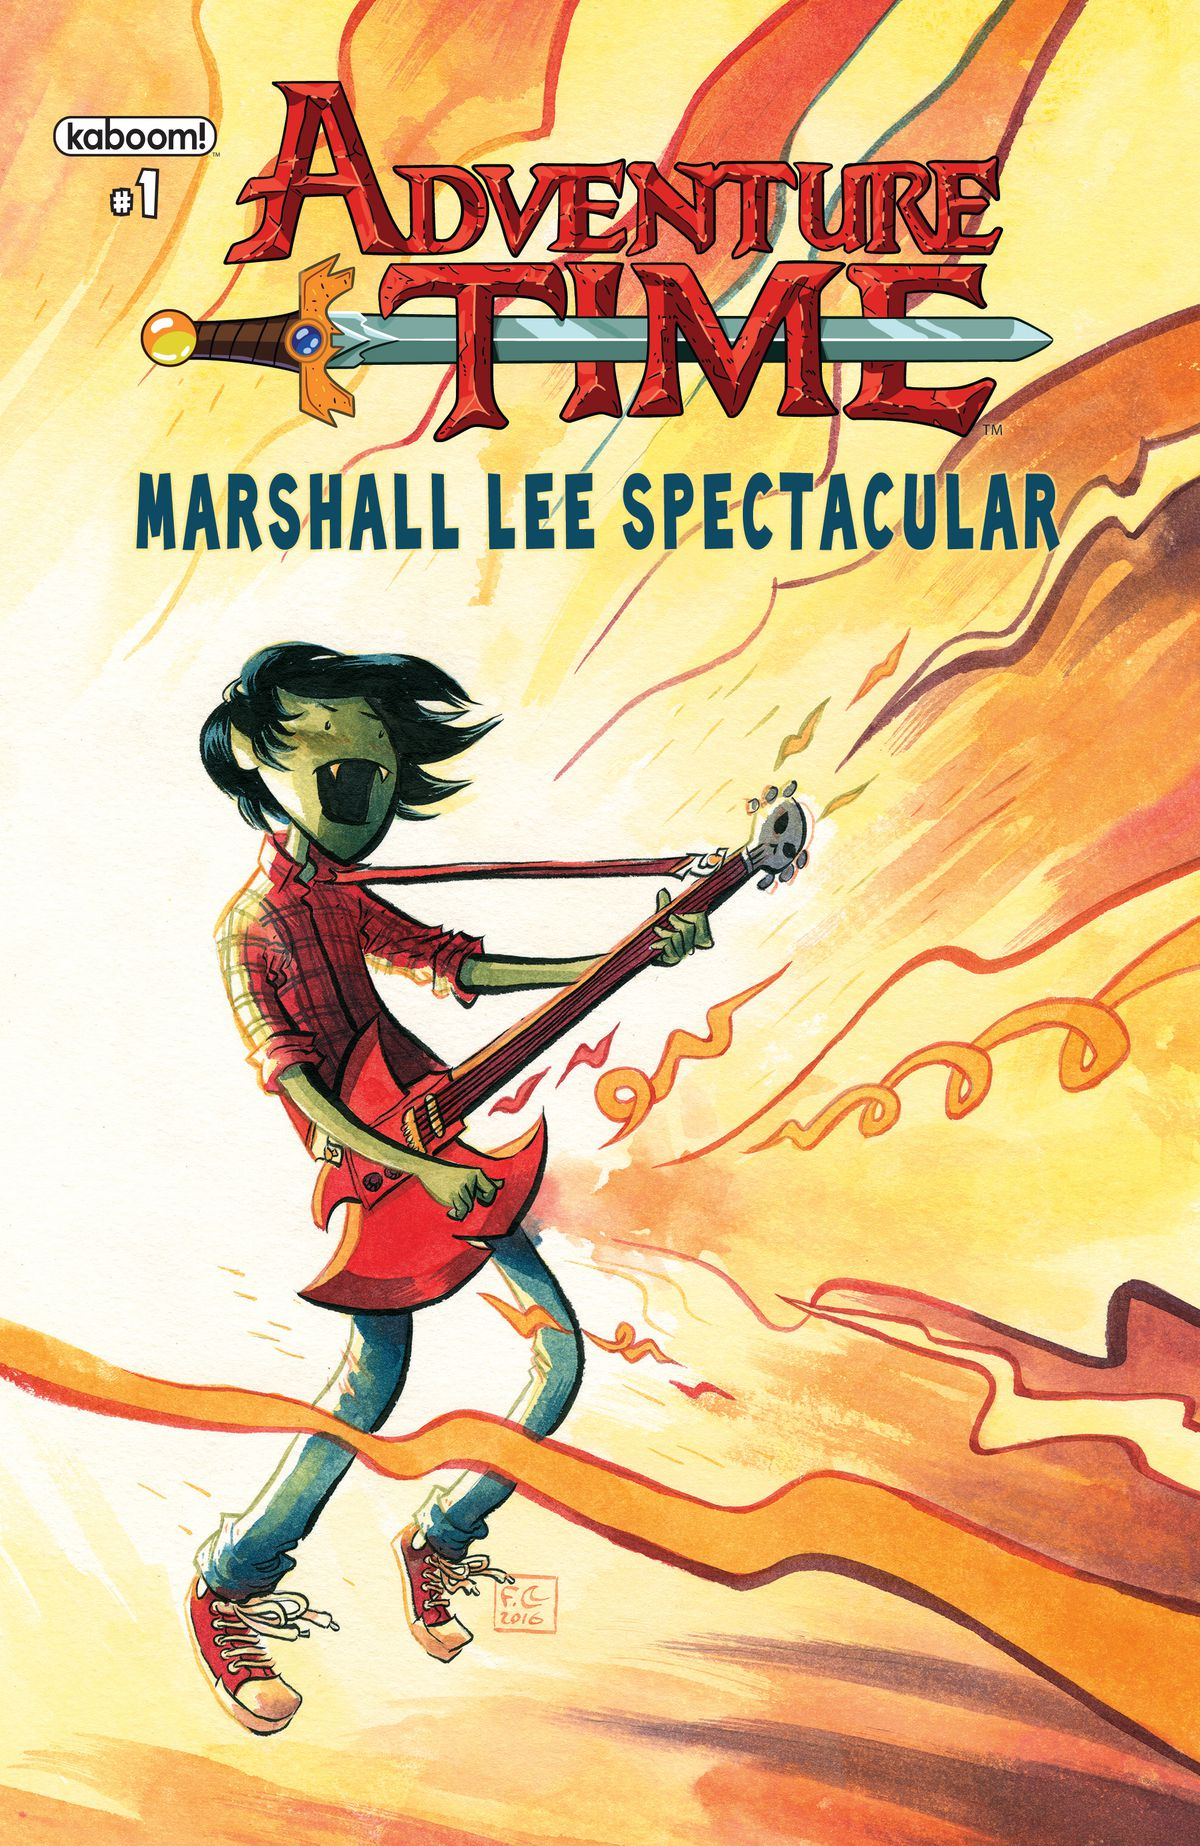 Adventure Time Gets Spectacular With Marshall Lee